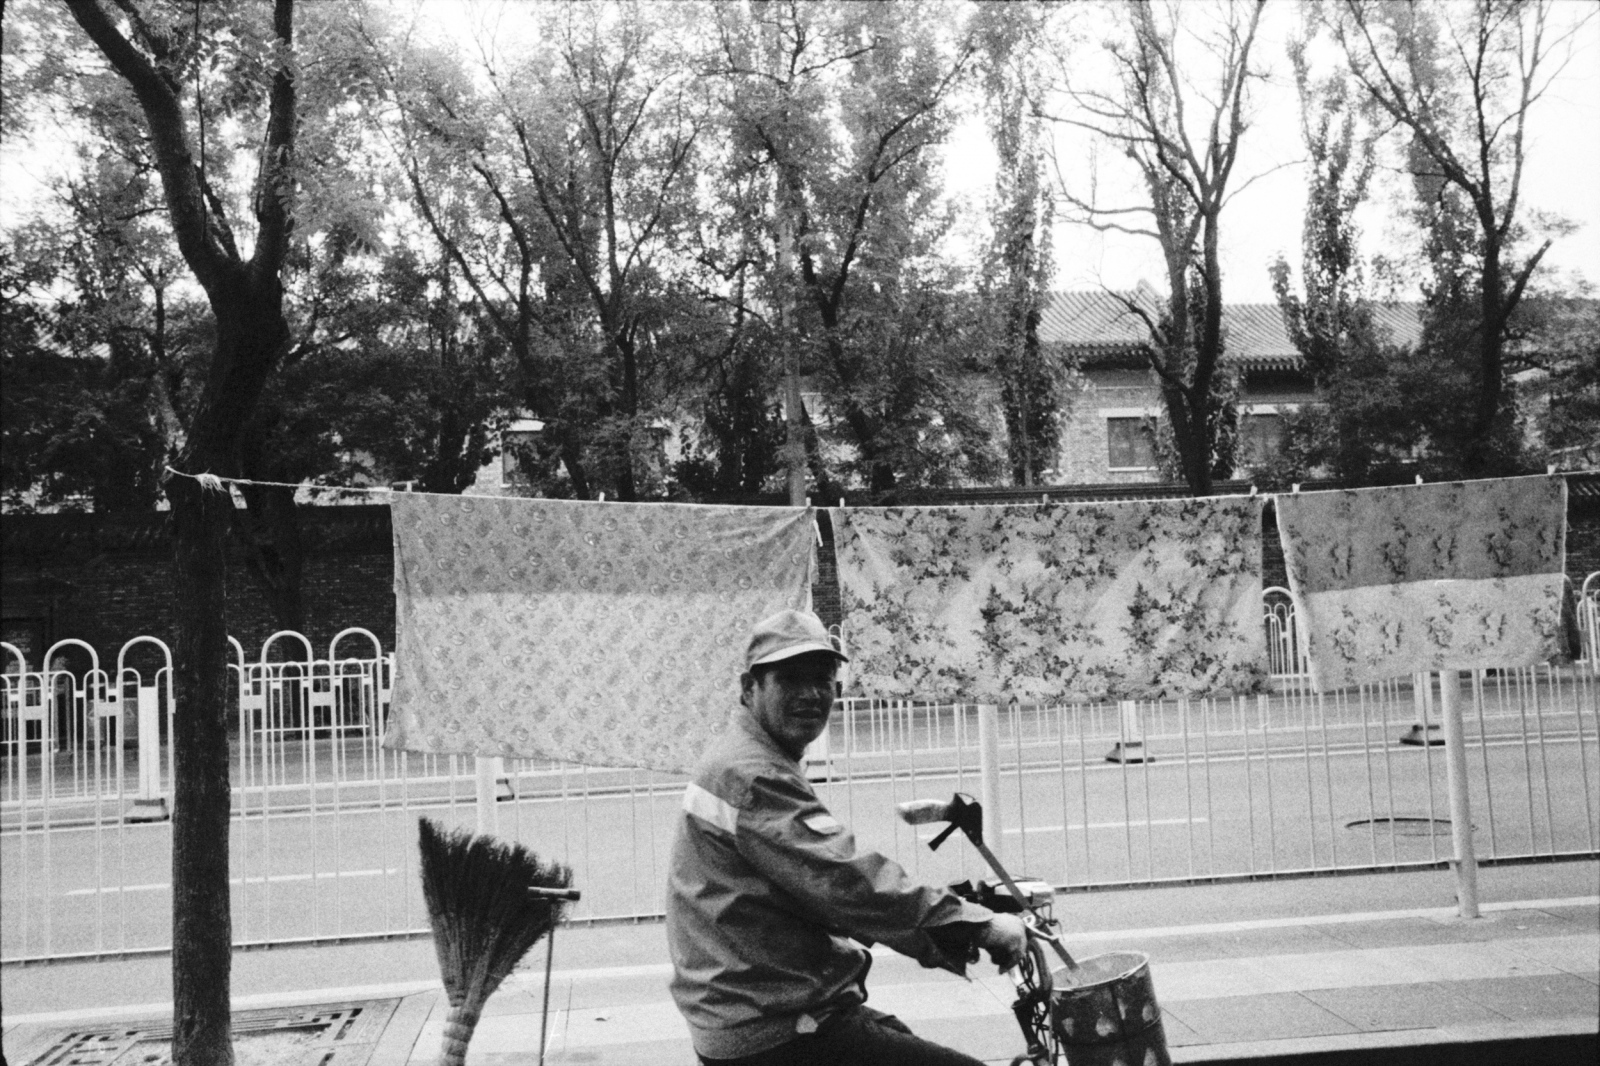 A worker smiled at me taking a photo of textiles, as he passed by. Beijing, China. 2015